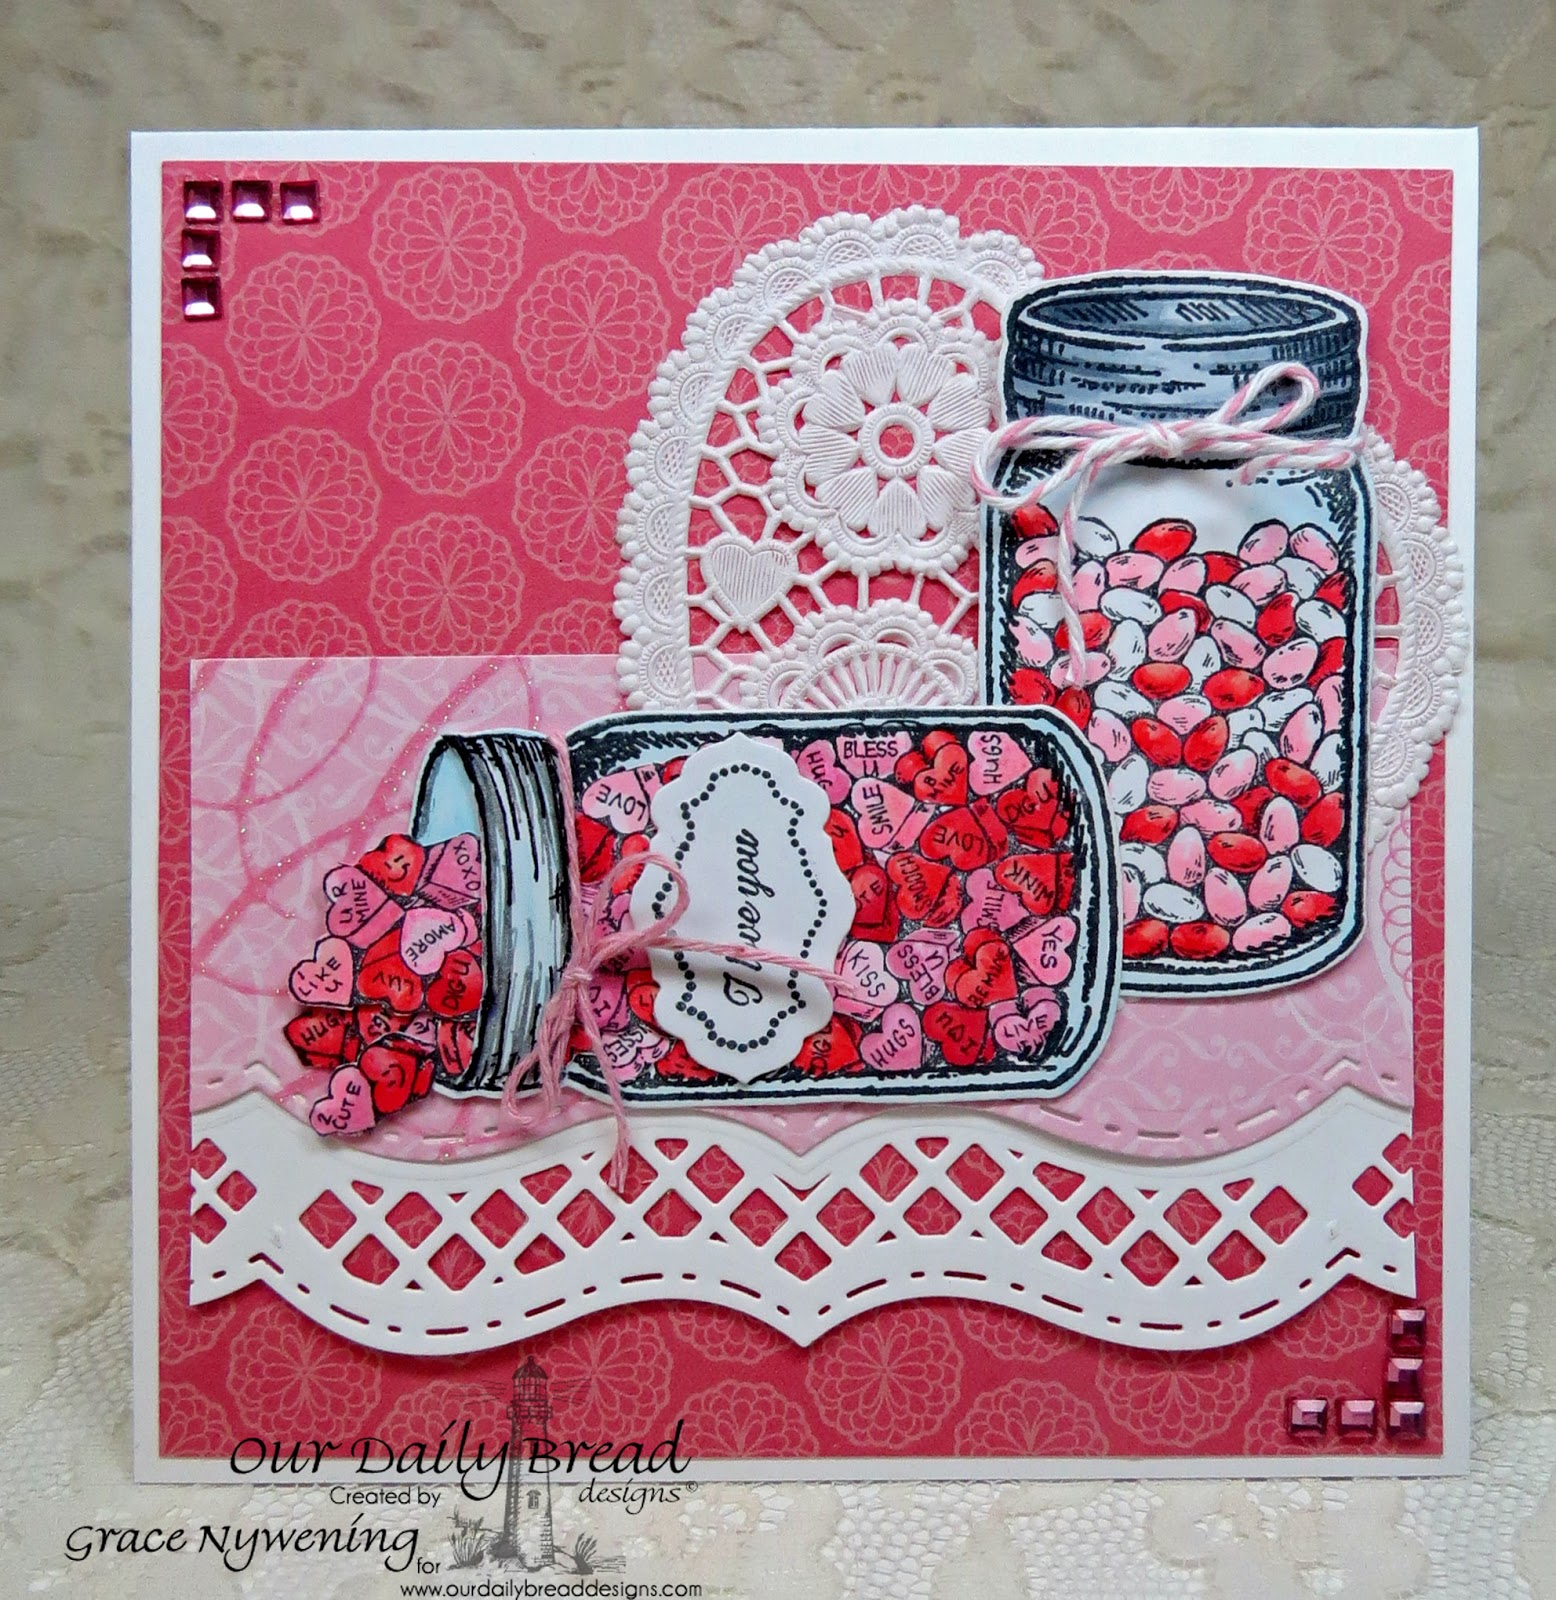 Stamps - Our Daily Bread Designs Canning Jar Fillers, Blue Ribbon Winner, Antique Labels and Borders, Ornate Borders Sentiments, ODBD Custom Canning Jars Die,  ODBD Custom Antique Labels & Border Die